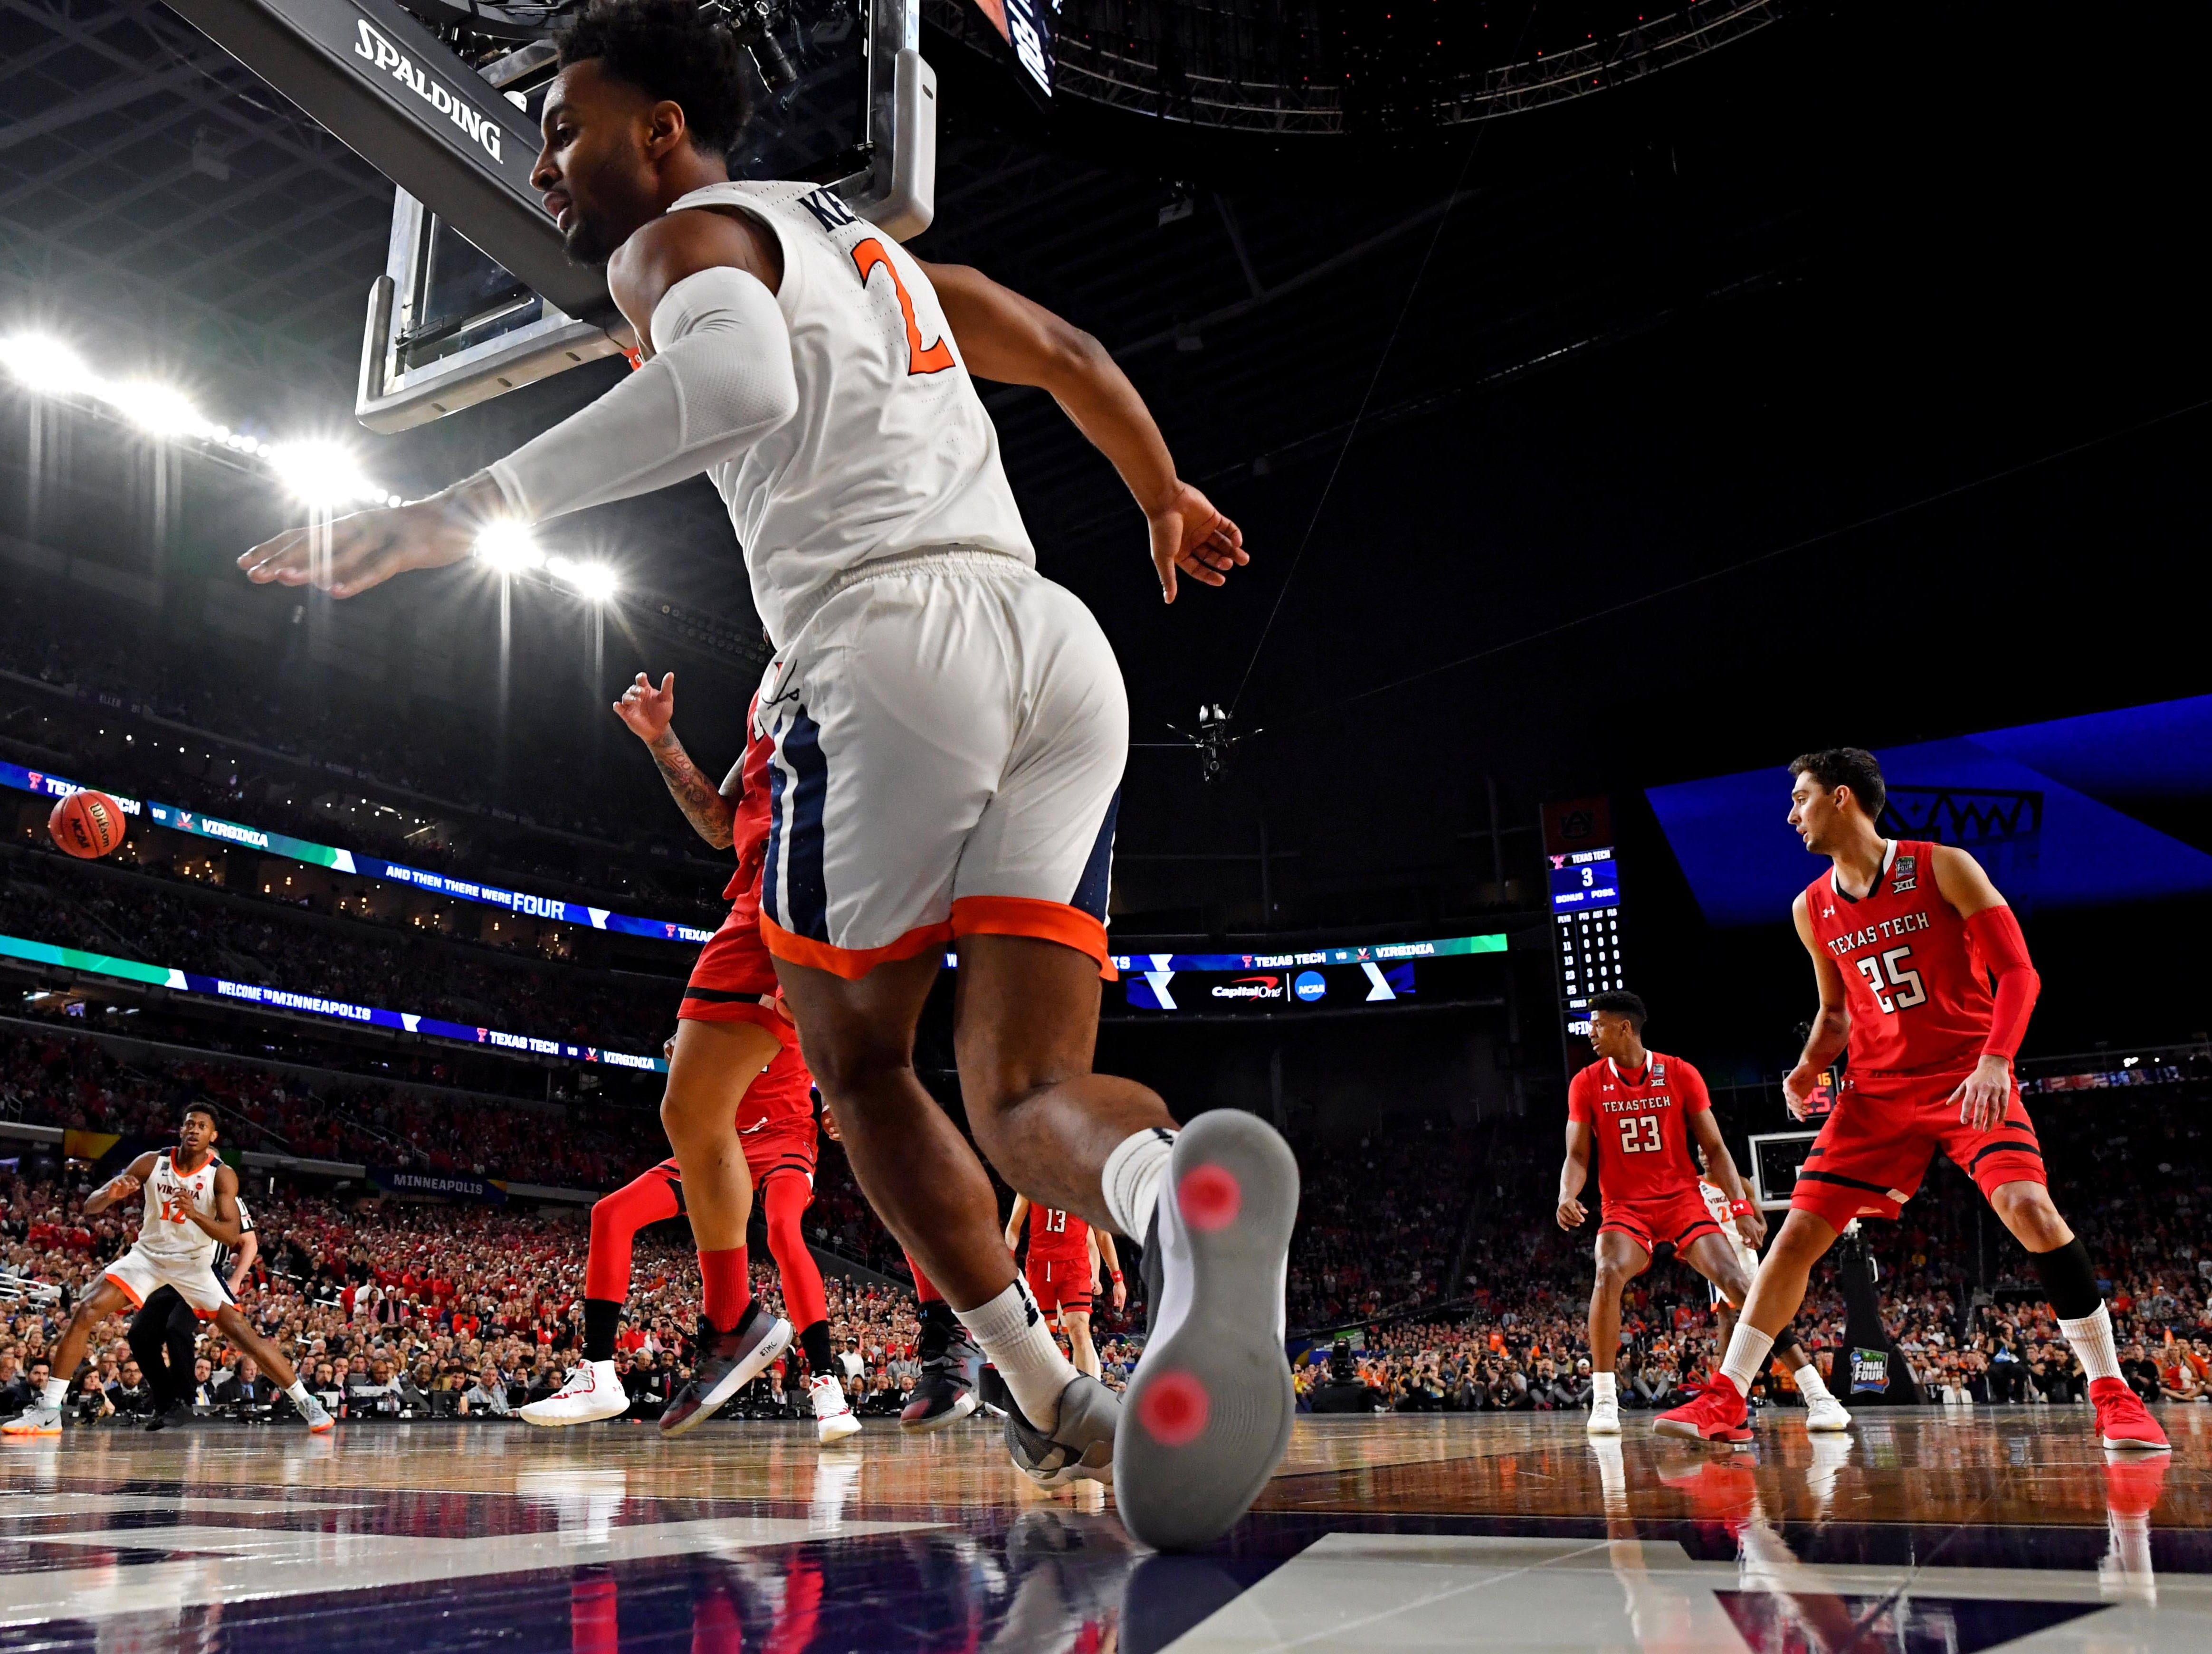 Apr 8, 2019; Minneapolis, MN, USA; Virginia Cavaliers guard Braxton Key (2) passes the ball against Texas Tech Red Raiders guard Brandone Francis (1) during the first half in the championship game of the 2019 men's Final Four at US Bank Stadium. Mandatory Credit: Bob Donnan-USA TODAY Sports